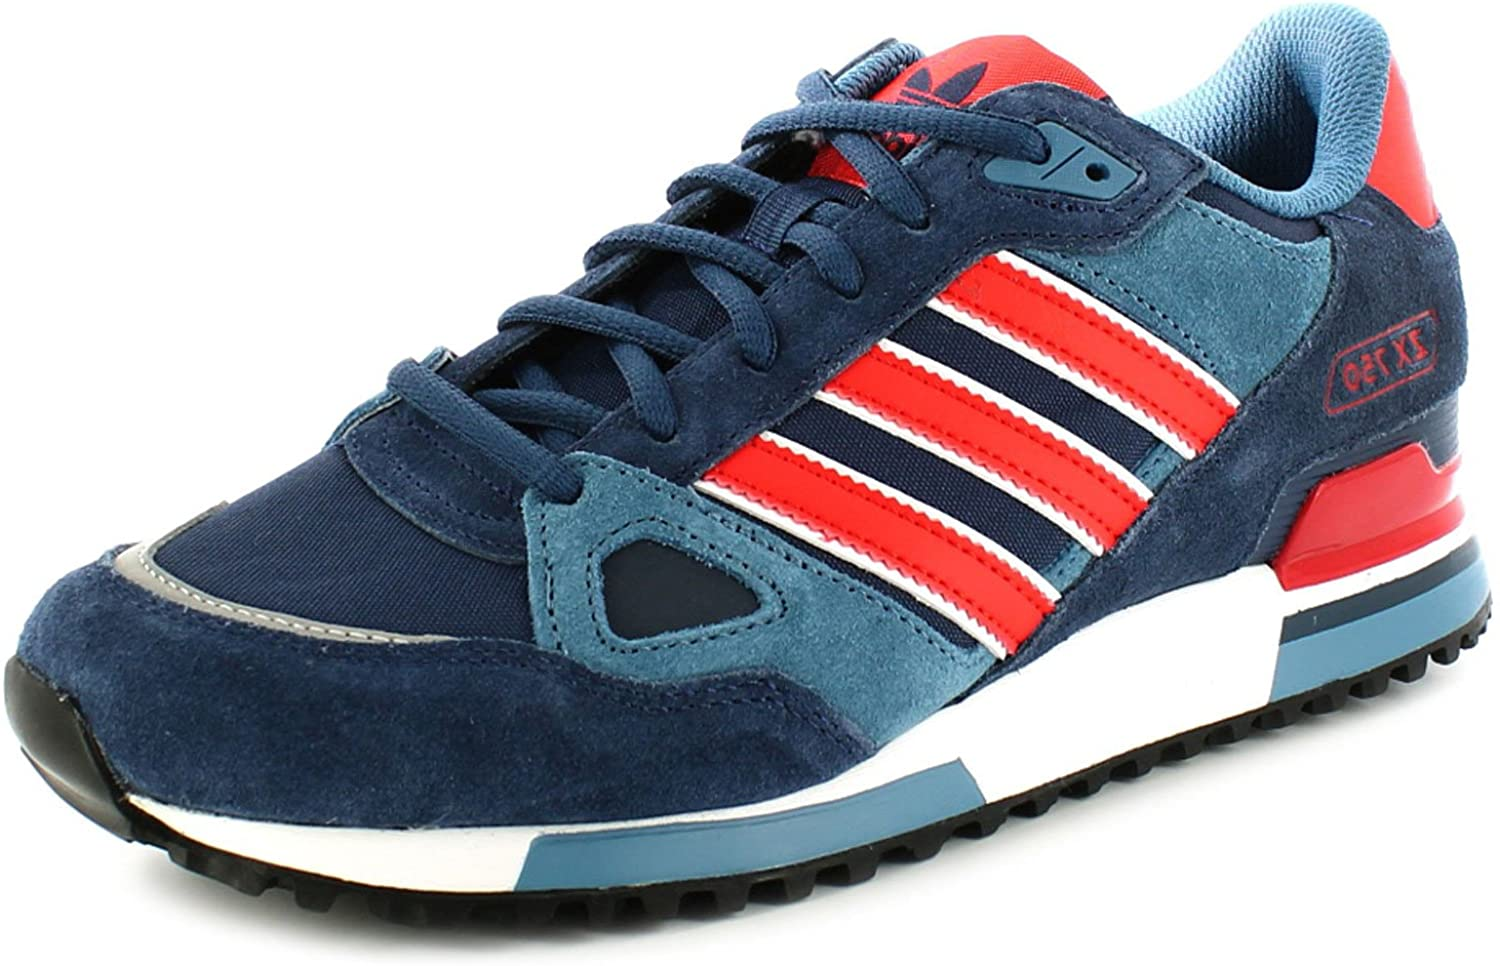 Persona con experiencia Húmedo Solicitante  adidas Originals Zx750 Mens Other Leather Material Running Trainers  Collegiate Navy/Popy: Amazon.co.uk: Shoes & Bags